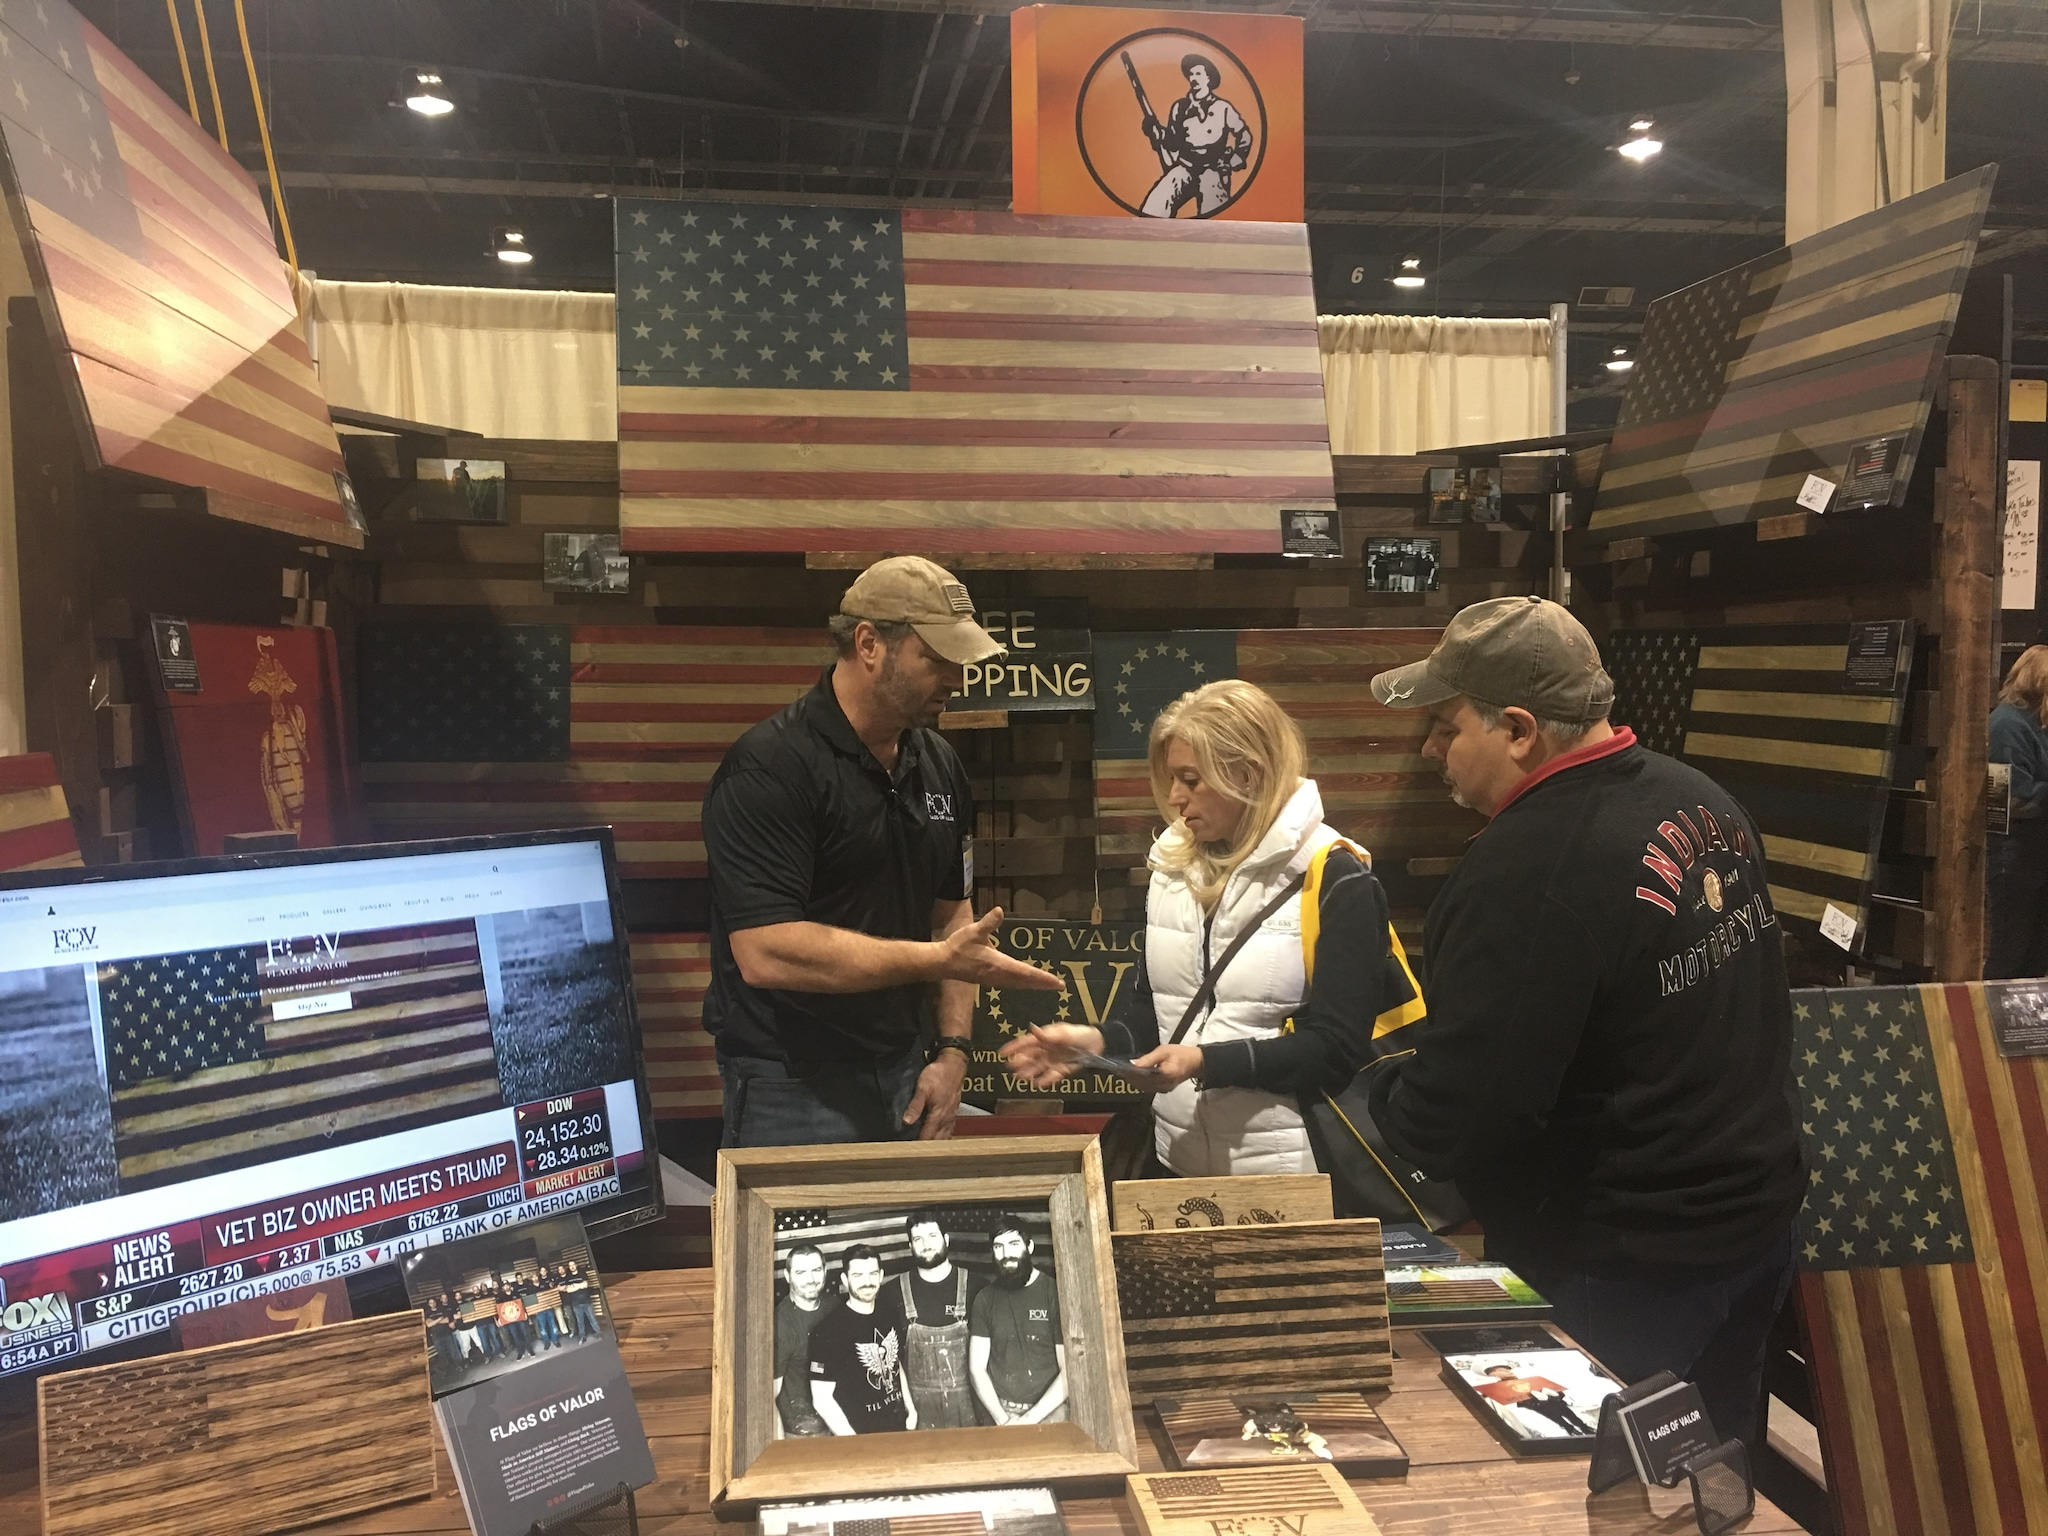 Bill Steorts, director of sales for Flags of Valor, assists customers at the 2018 Great American Outdoor Show in Harrisburg, Pennsylvania. (Photo: Christen Smith/Guns.com)